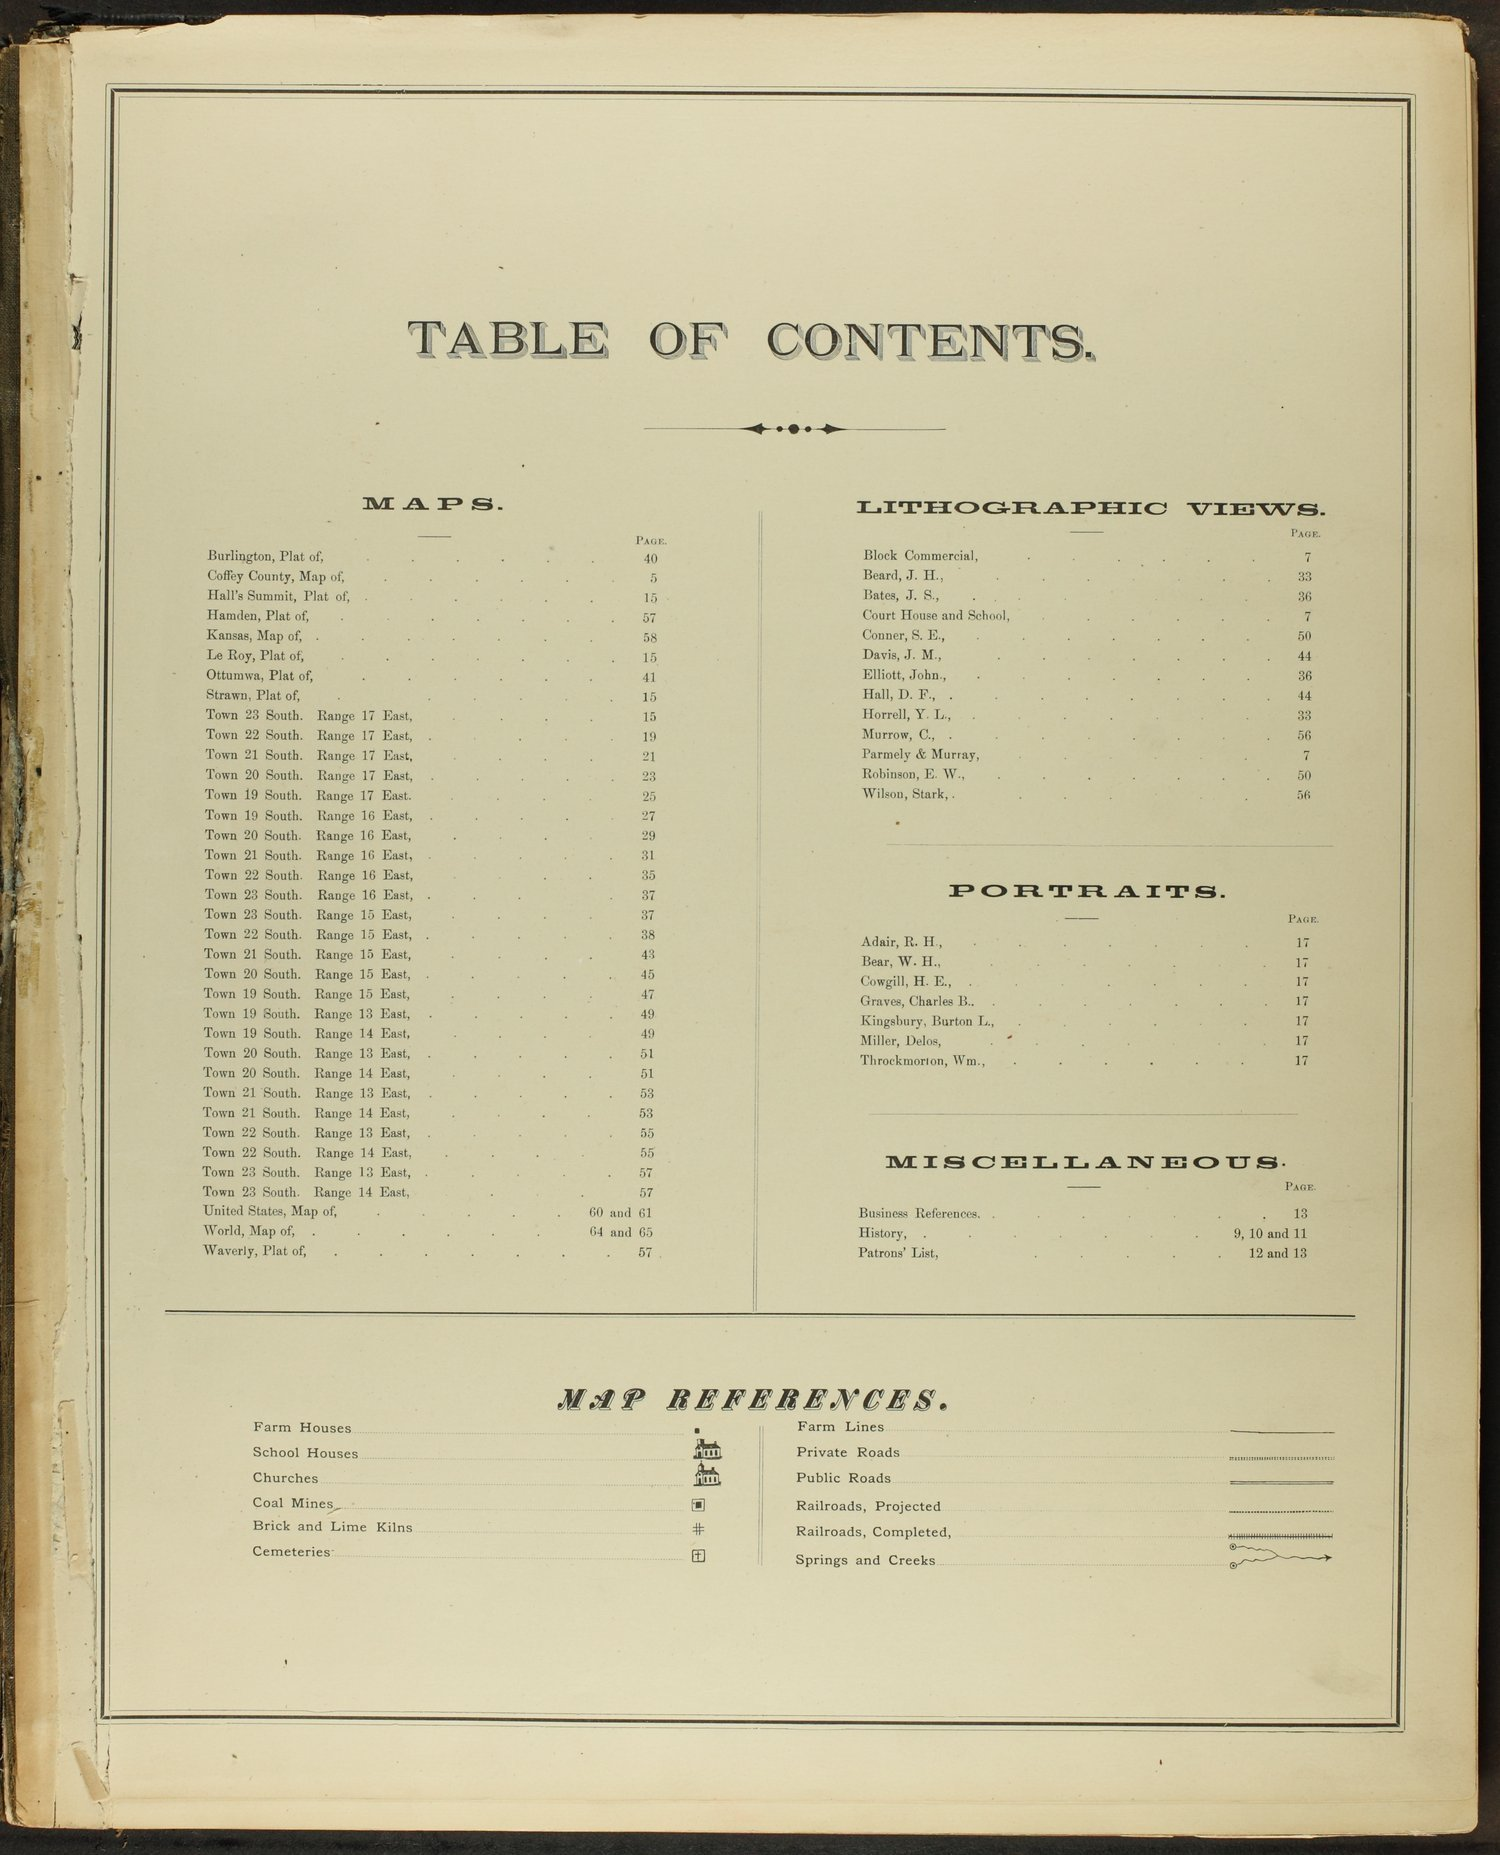 An illustrated historical atlas of Coffey County, Kansas - Table of Contents